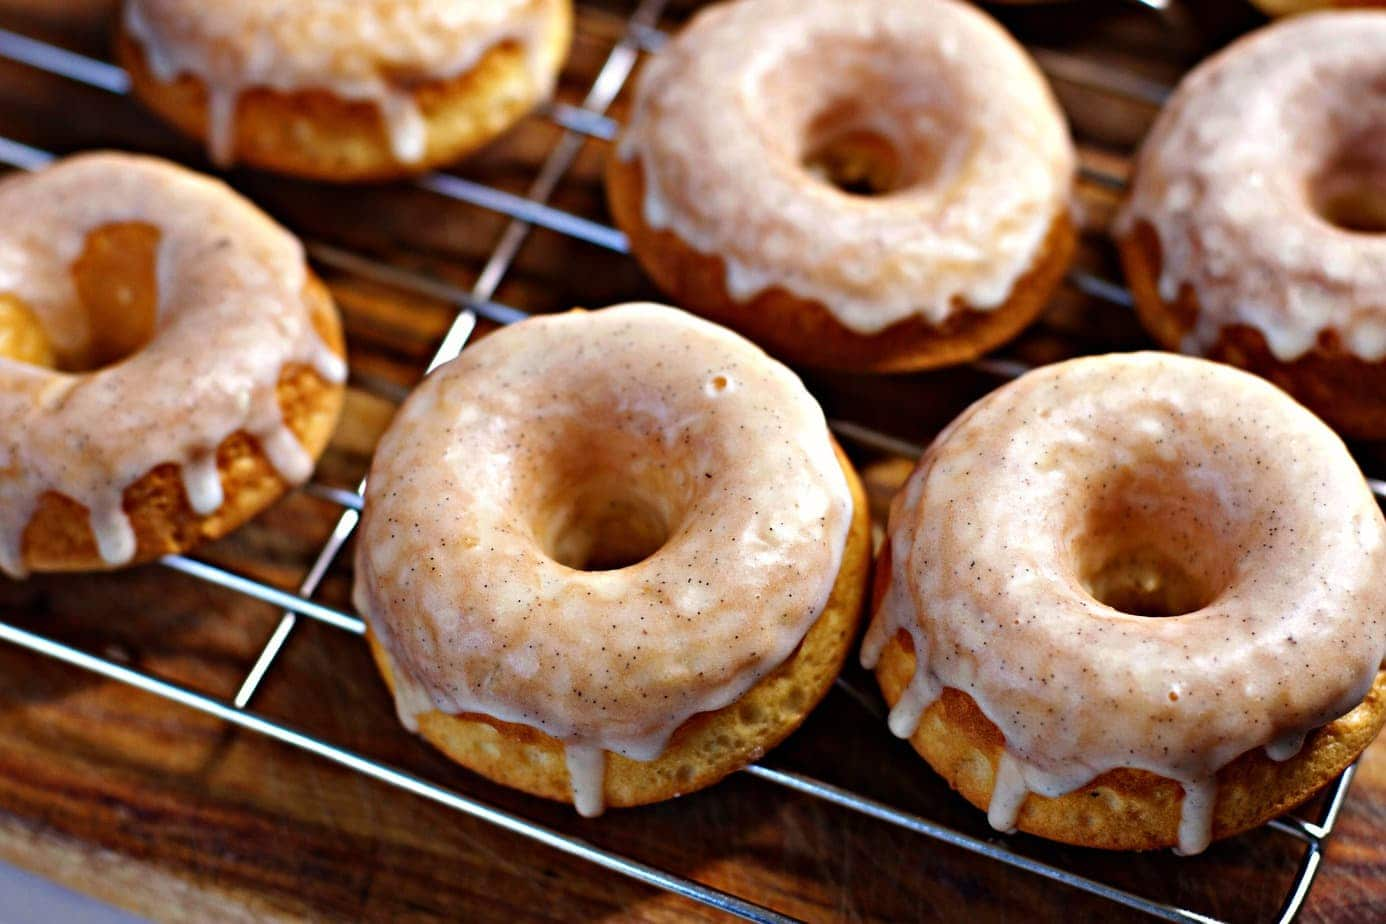 Mad Creations Baked Keto Donut with glaze